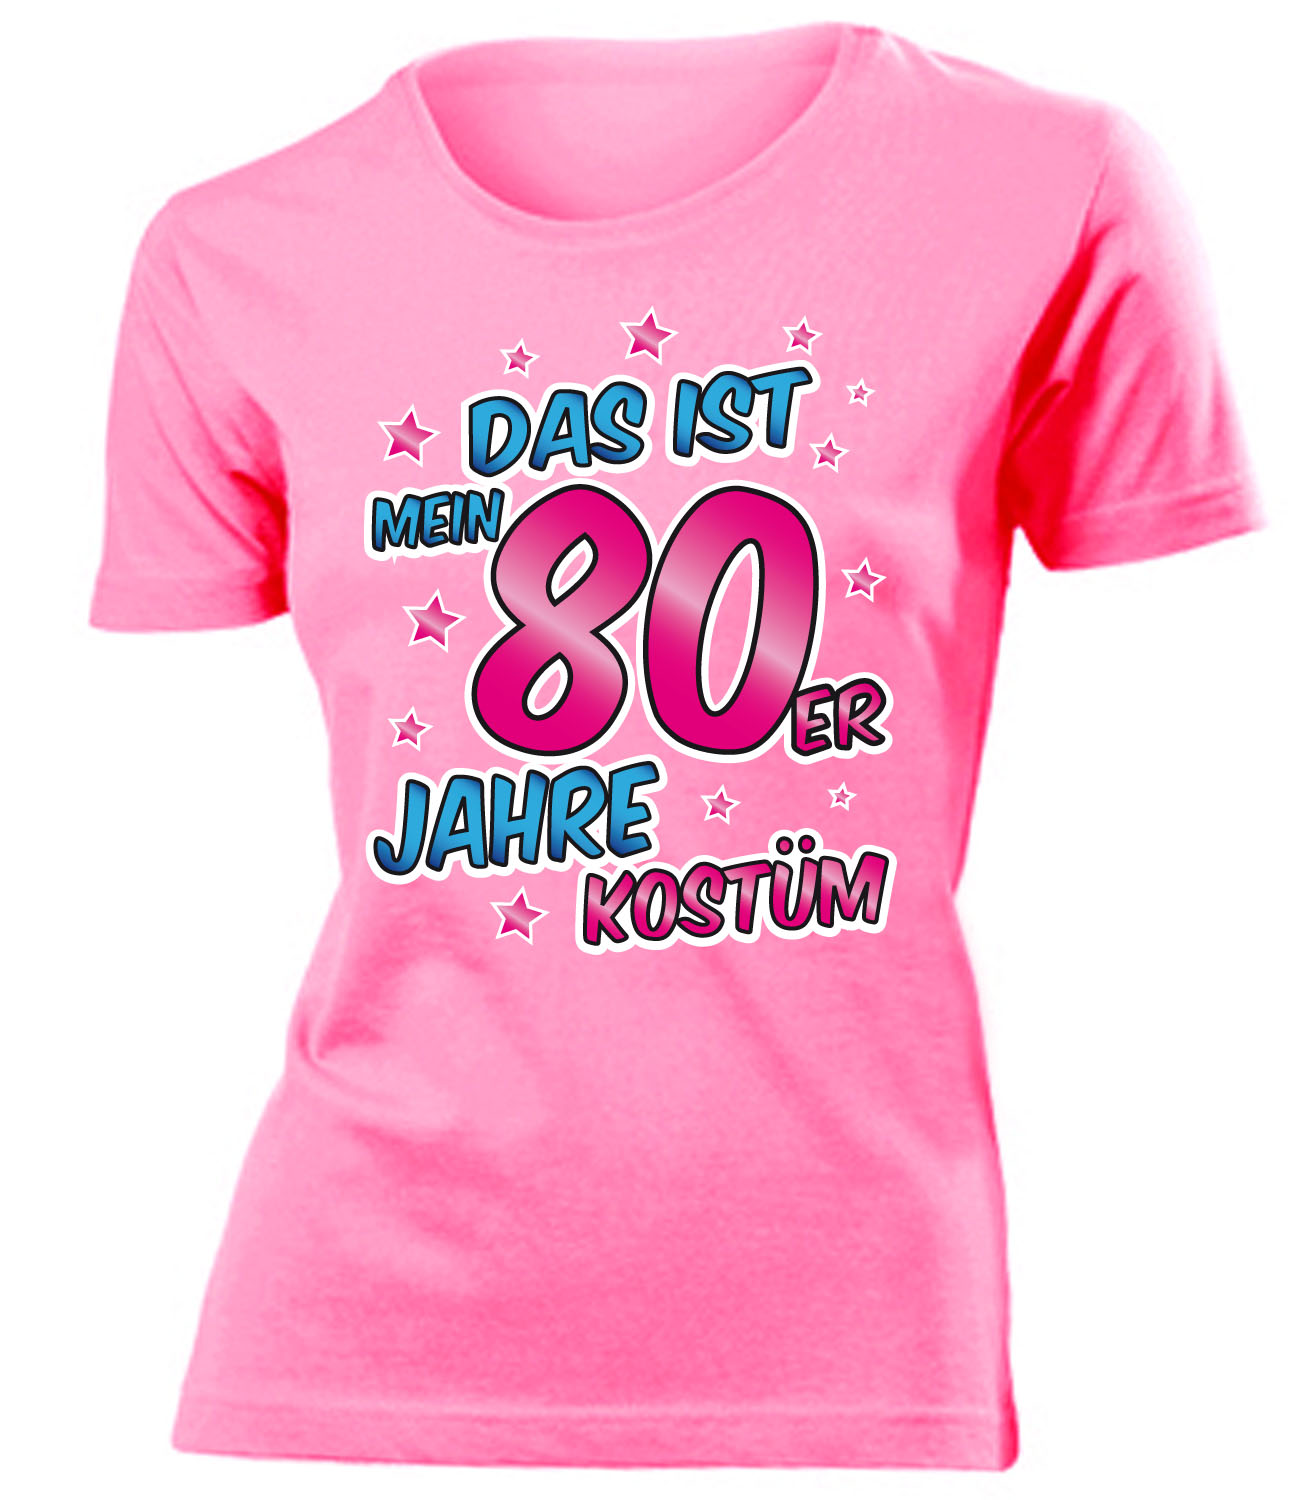 karnevalskost m das ist mein 80er jahre kost m t shirt damen s xxl ebay. Black Bedroom Furniture Sets. Home Design Ideas